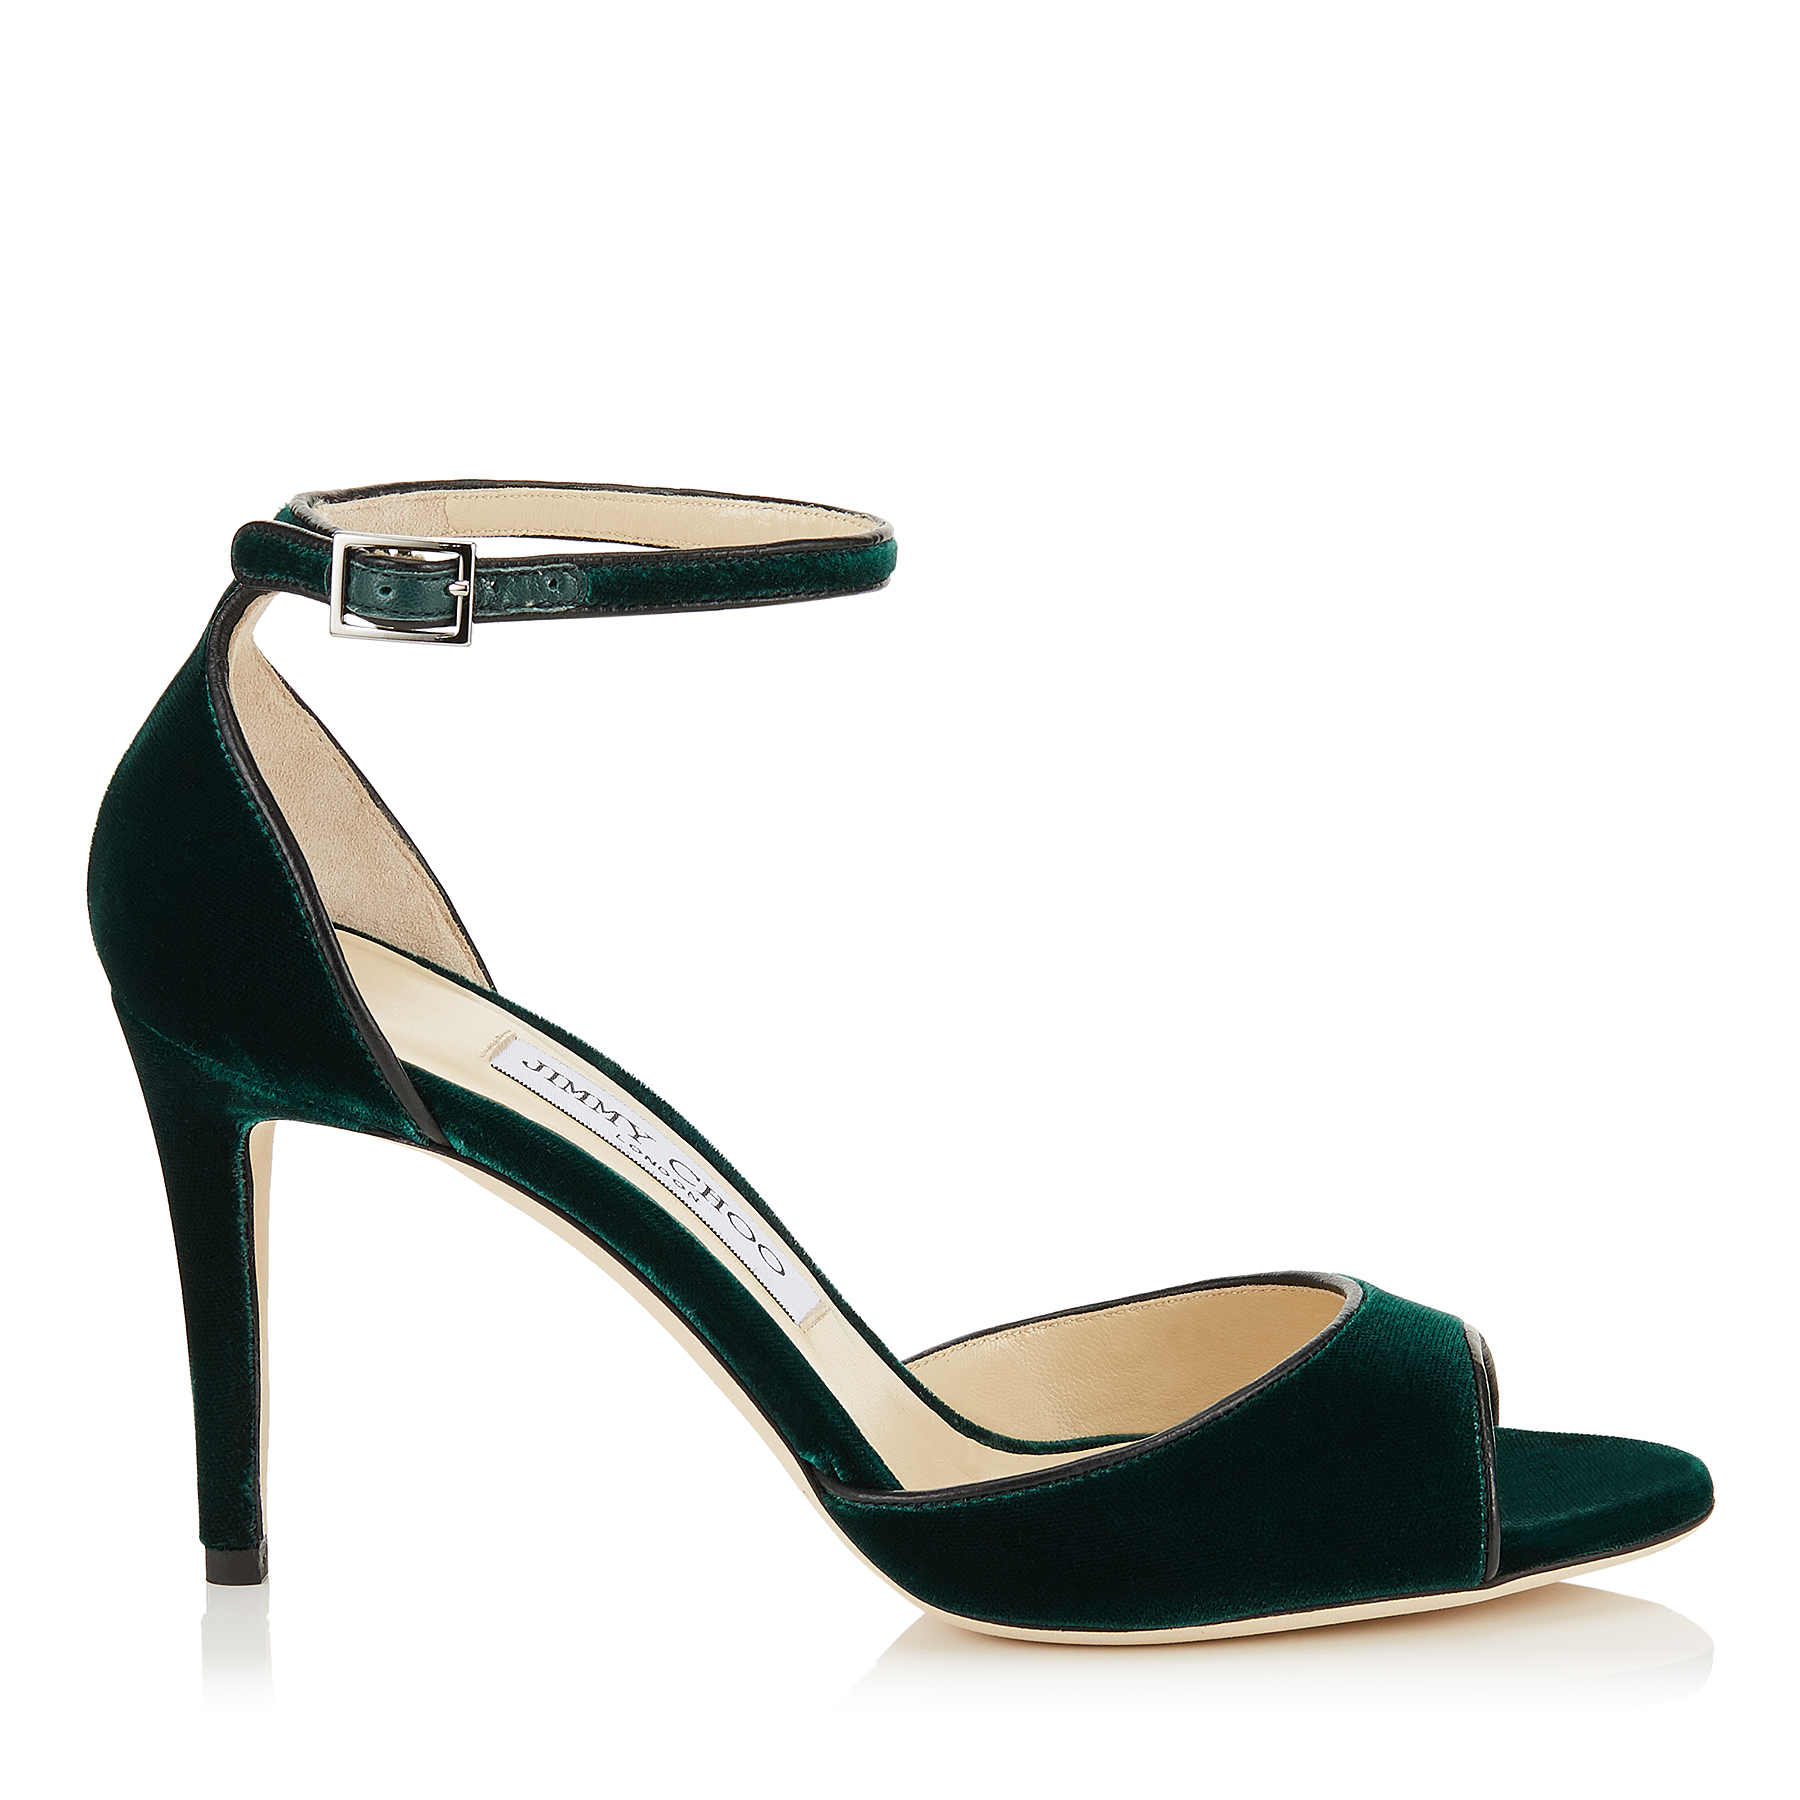 ANNIE 85 Bottle Green Velvet Peep Toe Sandals by Jimmy Choo